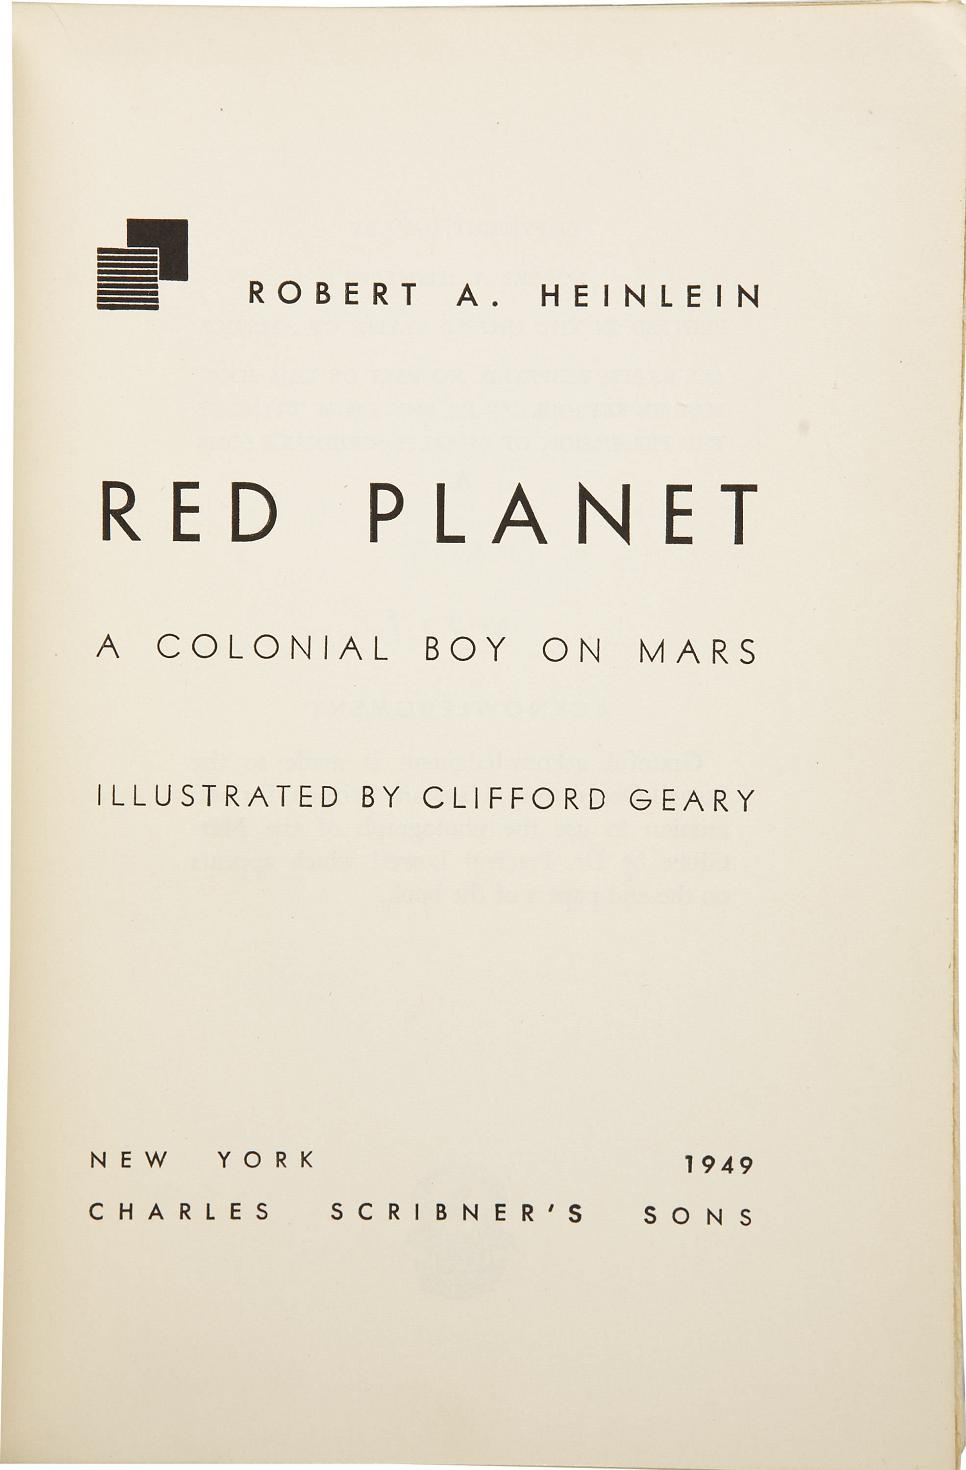 cover page for a book